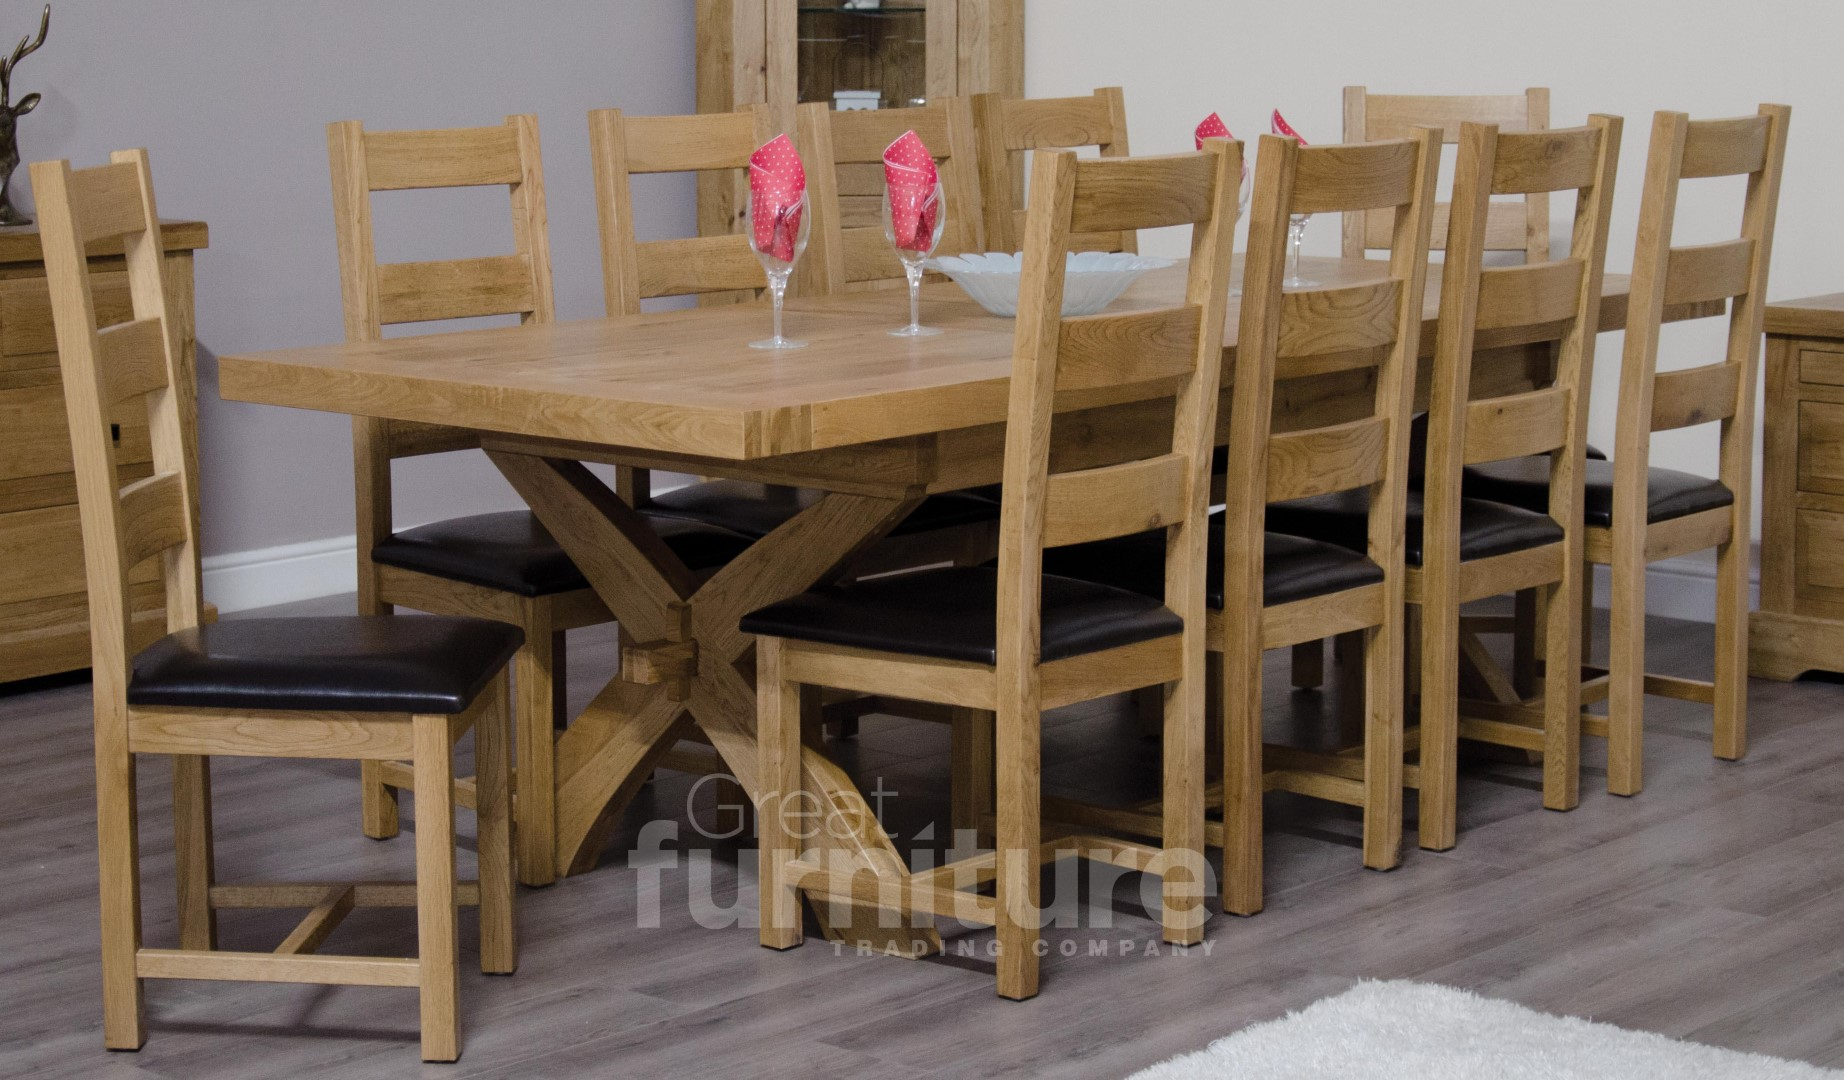 Deluxe X-Leg Dual Extending Solid Oak Dining Table with Ladderback Chairs